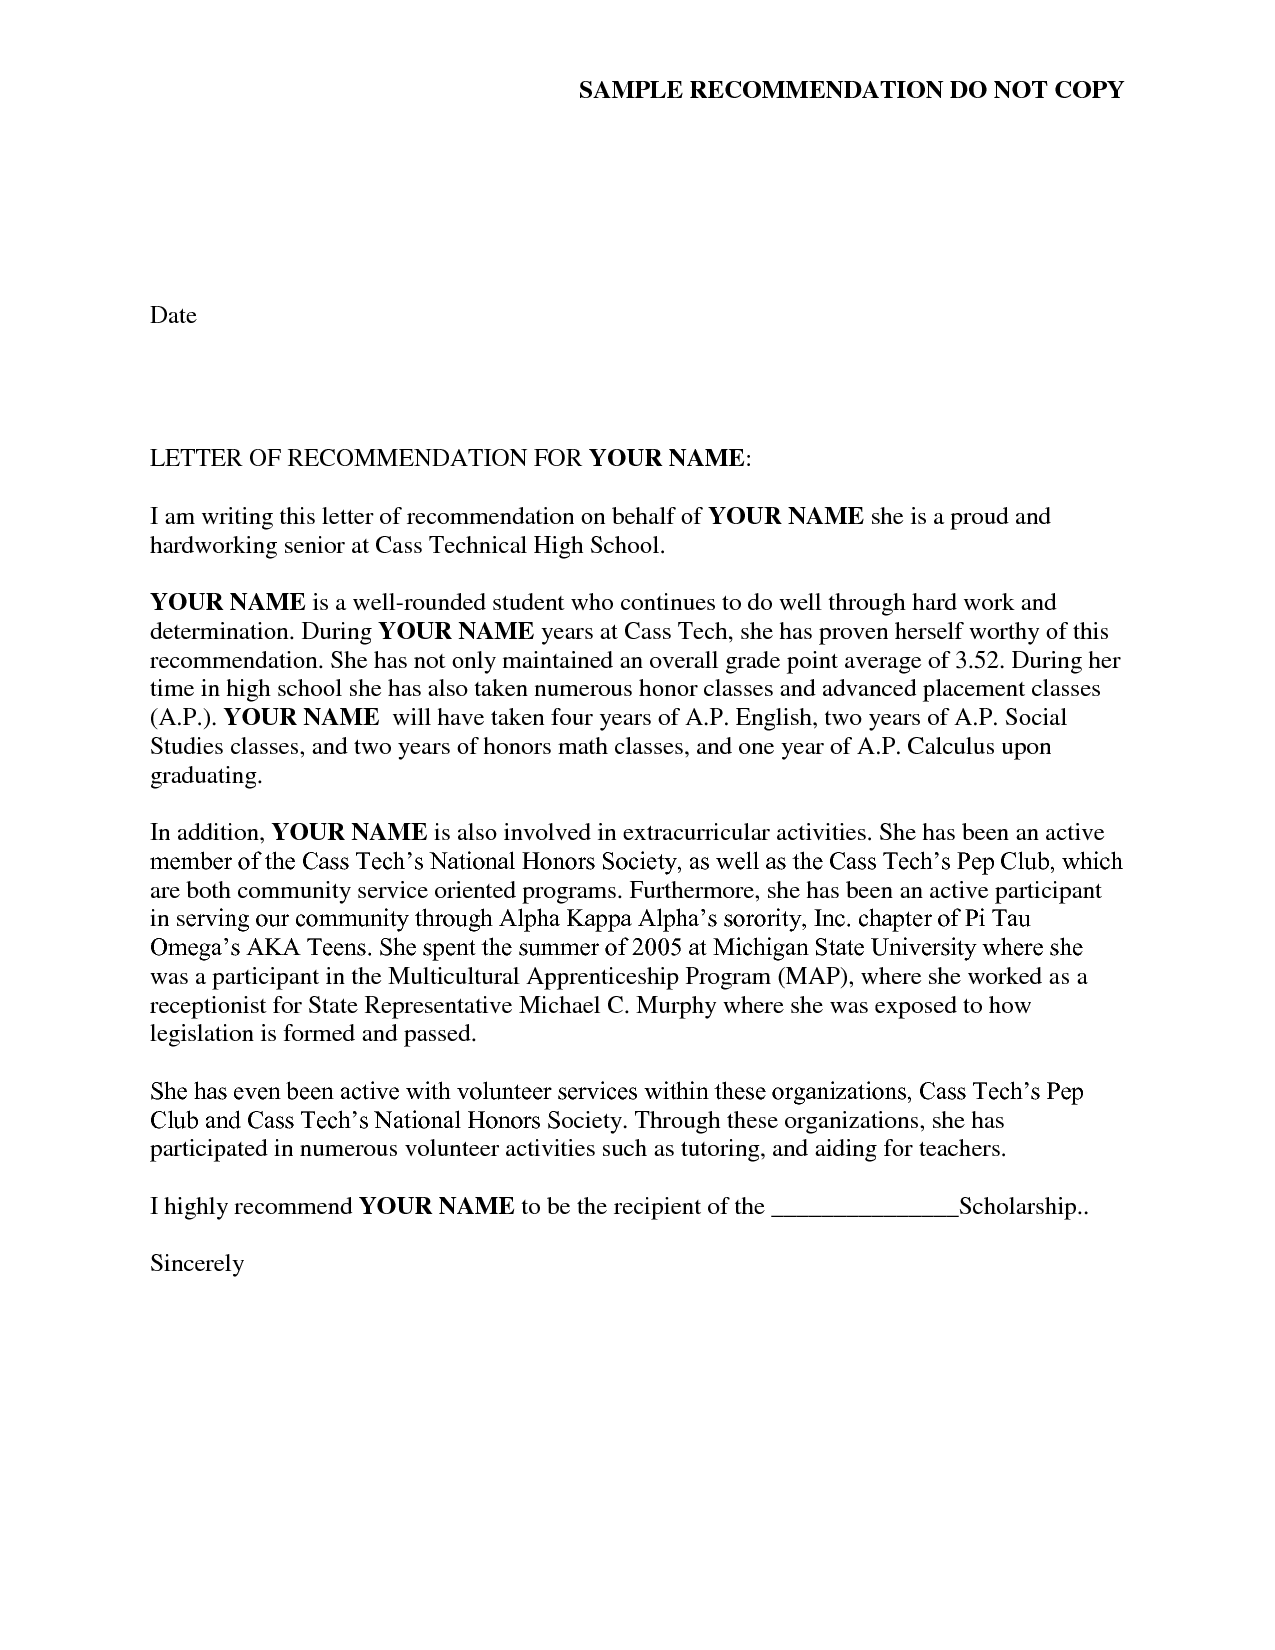 Reference letter of recommendation sample sample alpha kappa alpha reference letter of recommendation sample sample alpha kappa alpha recommendation letter spiritdancerdesigns Images